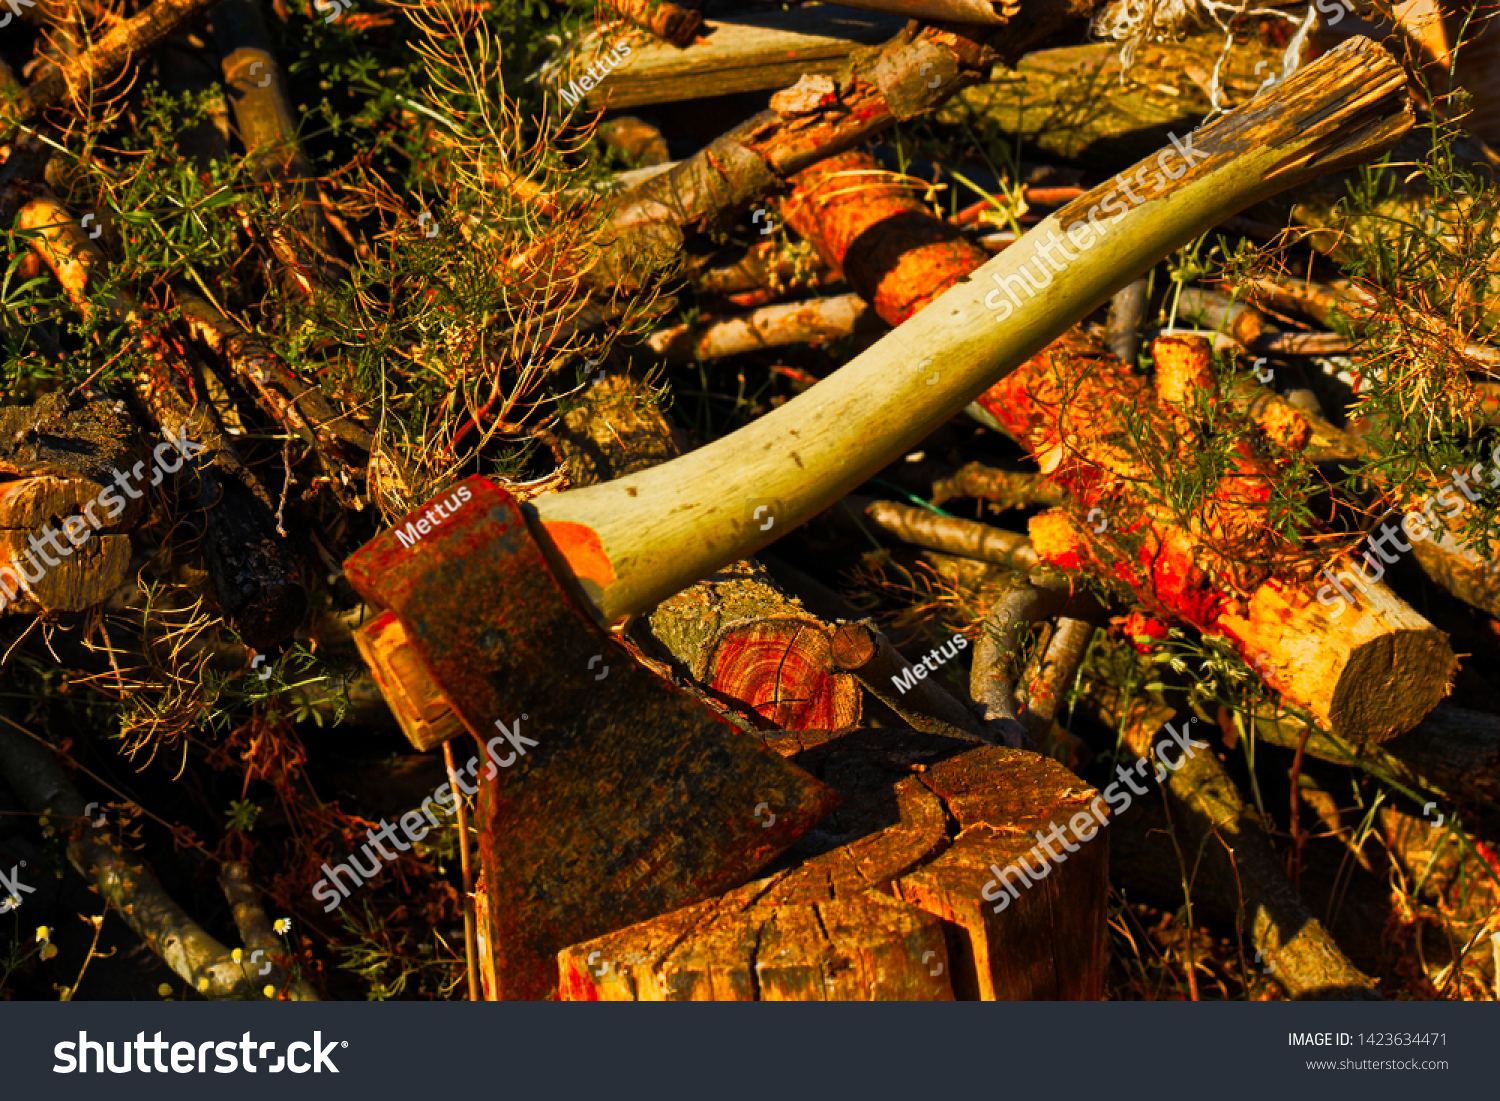 stock-photo-the-axe-stuck-in-the-choppin